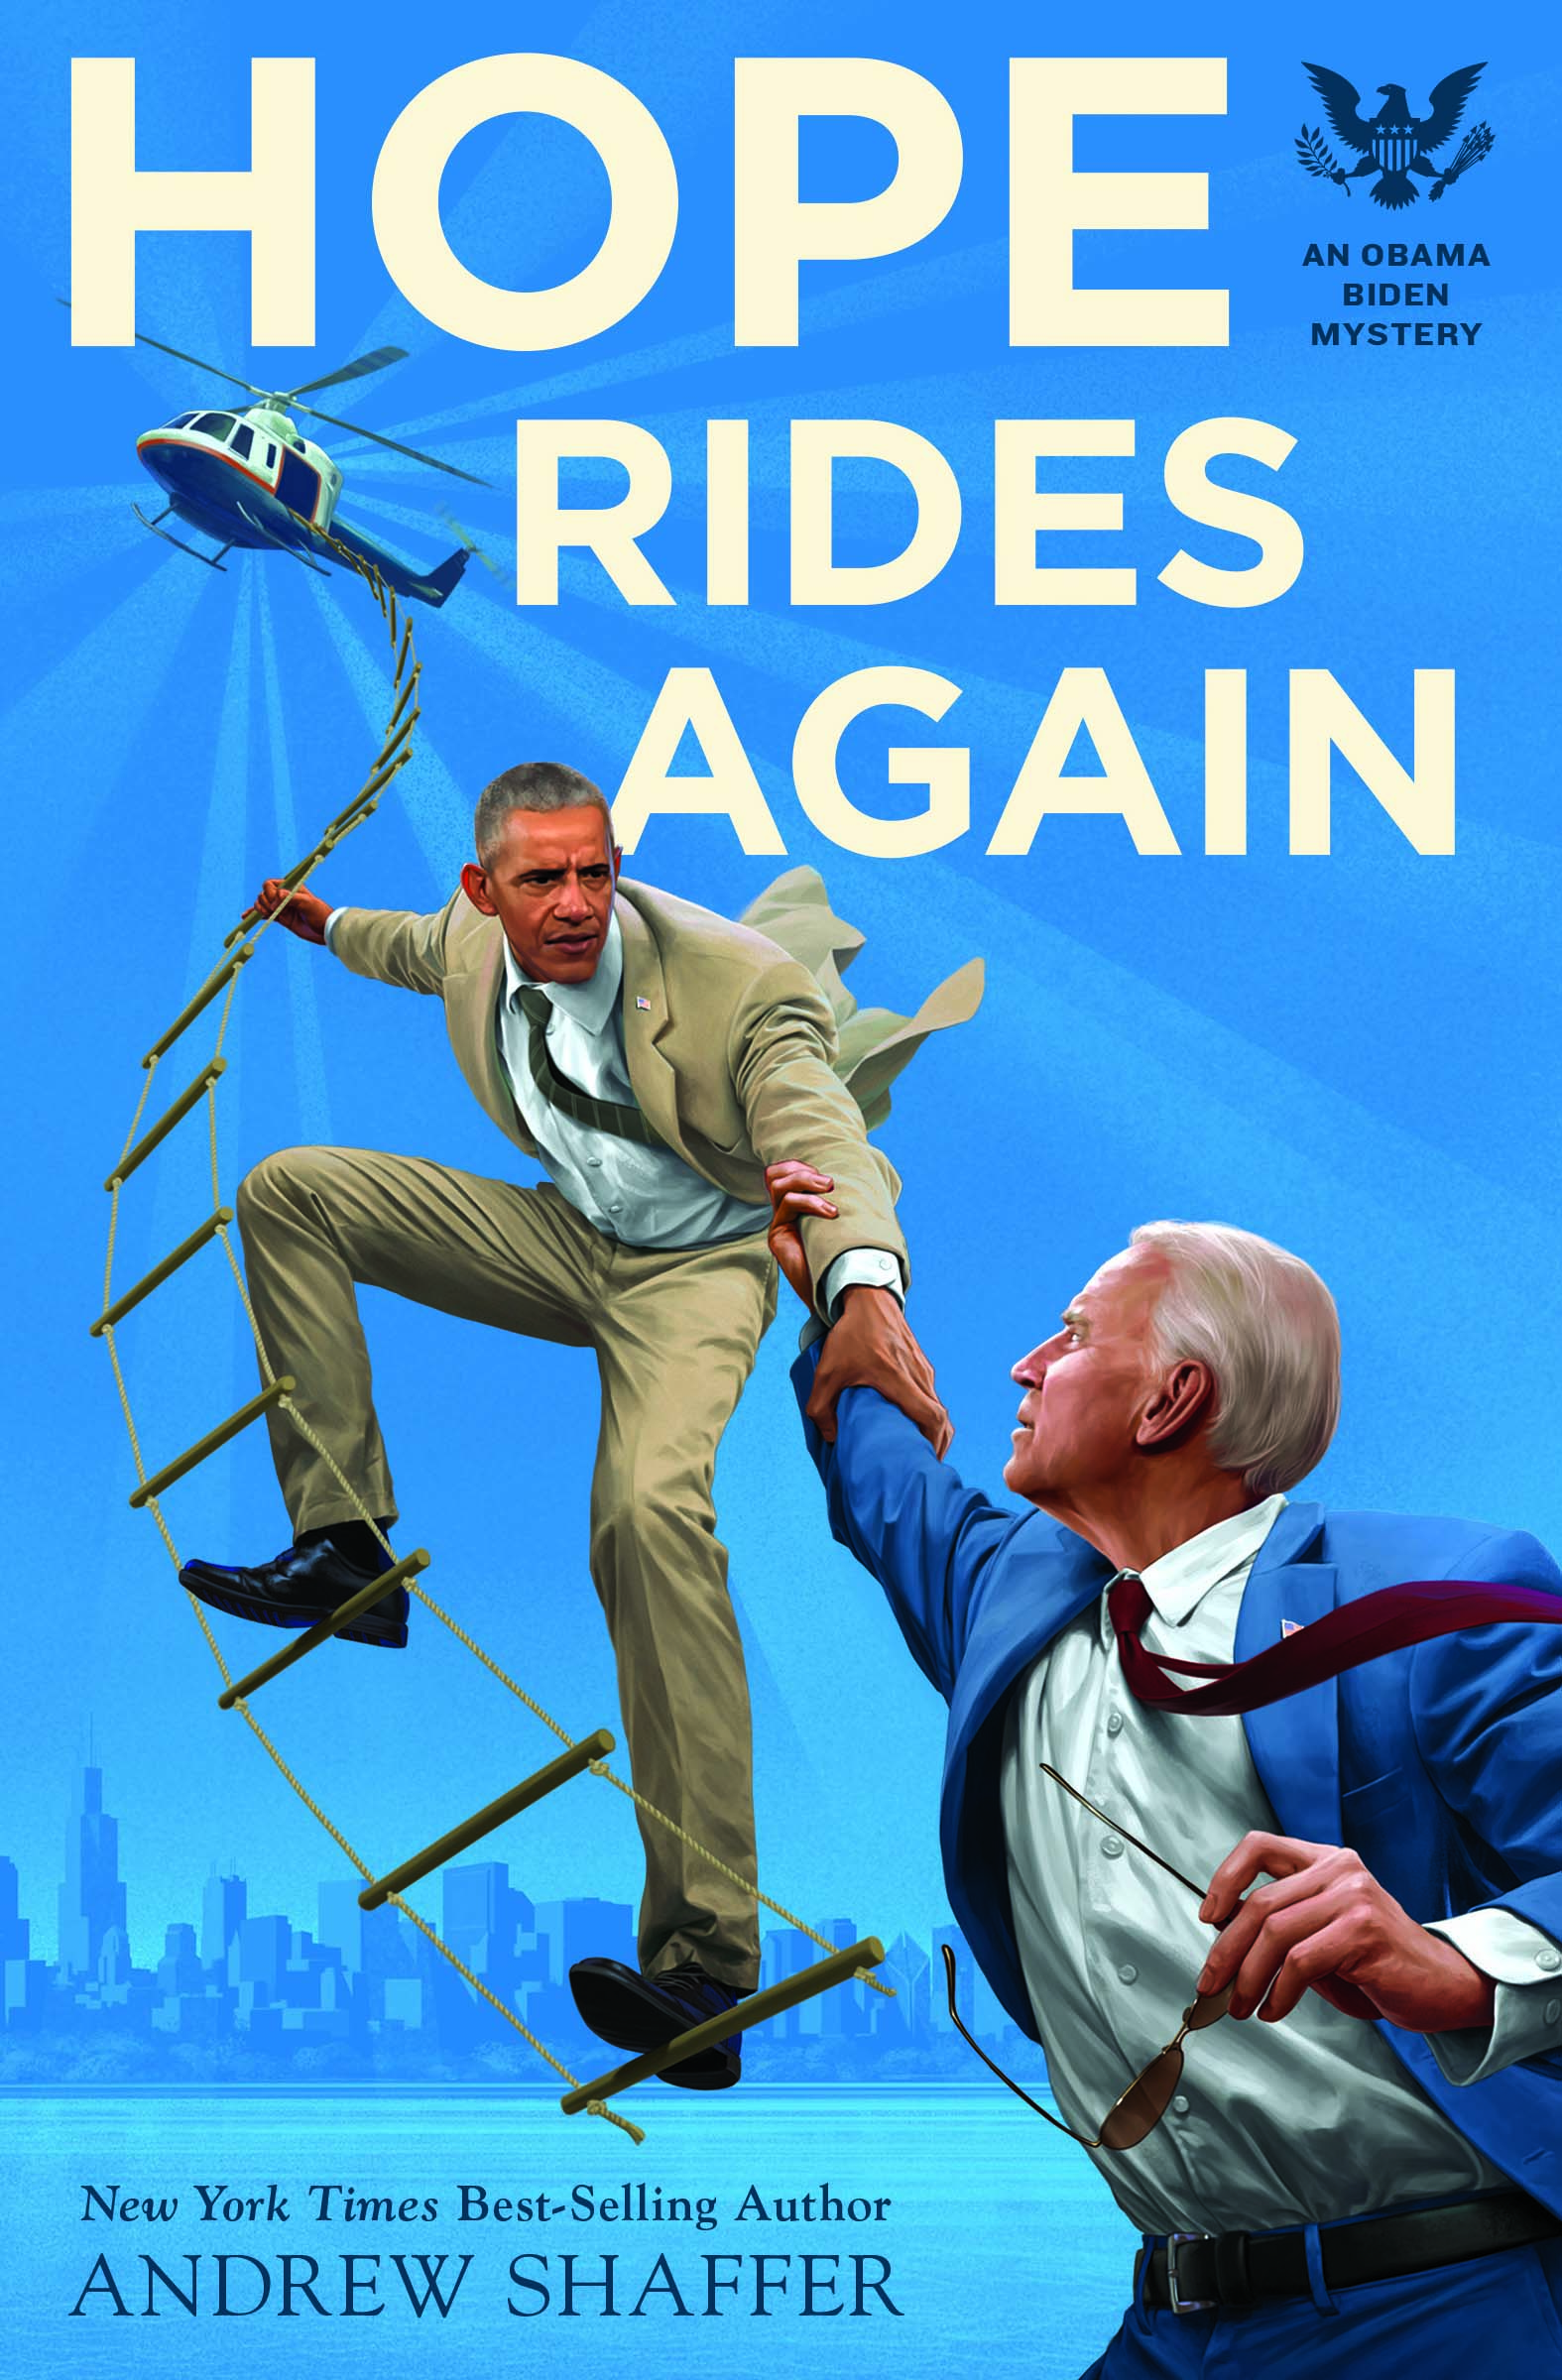 Hope Rides Again: An Obama Biden Murder